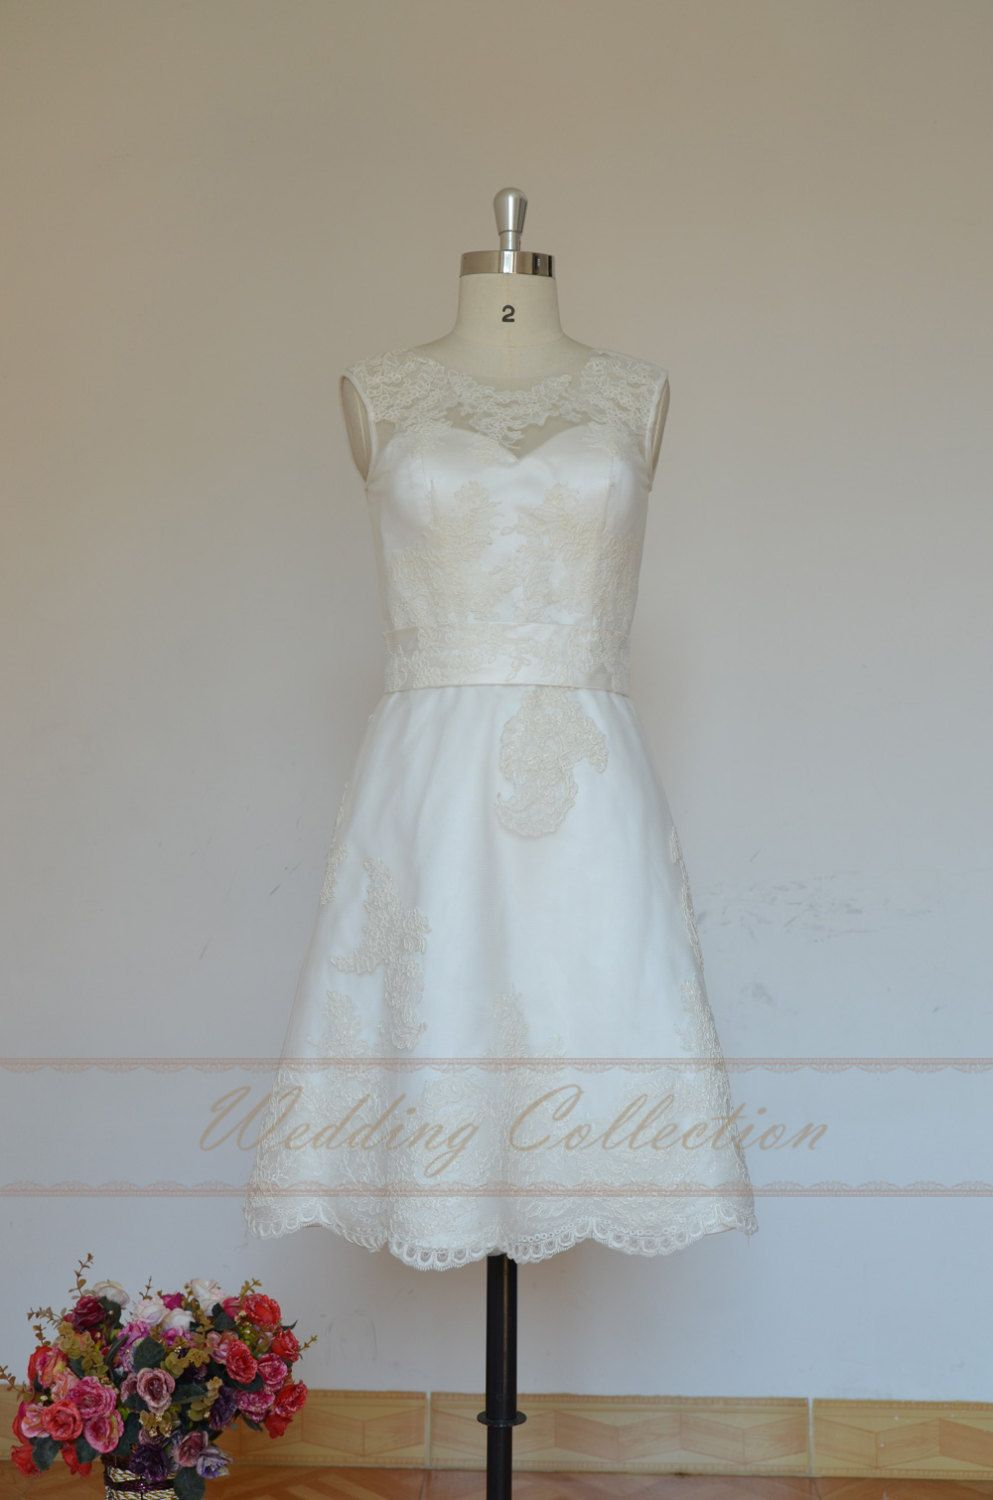 Lovely+short+lace+wedding+dress+Elopement+by+Weddingcollection,+$ ...